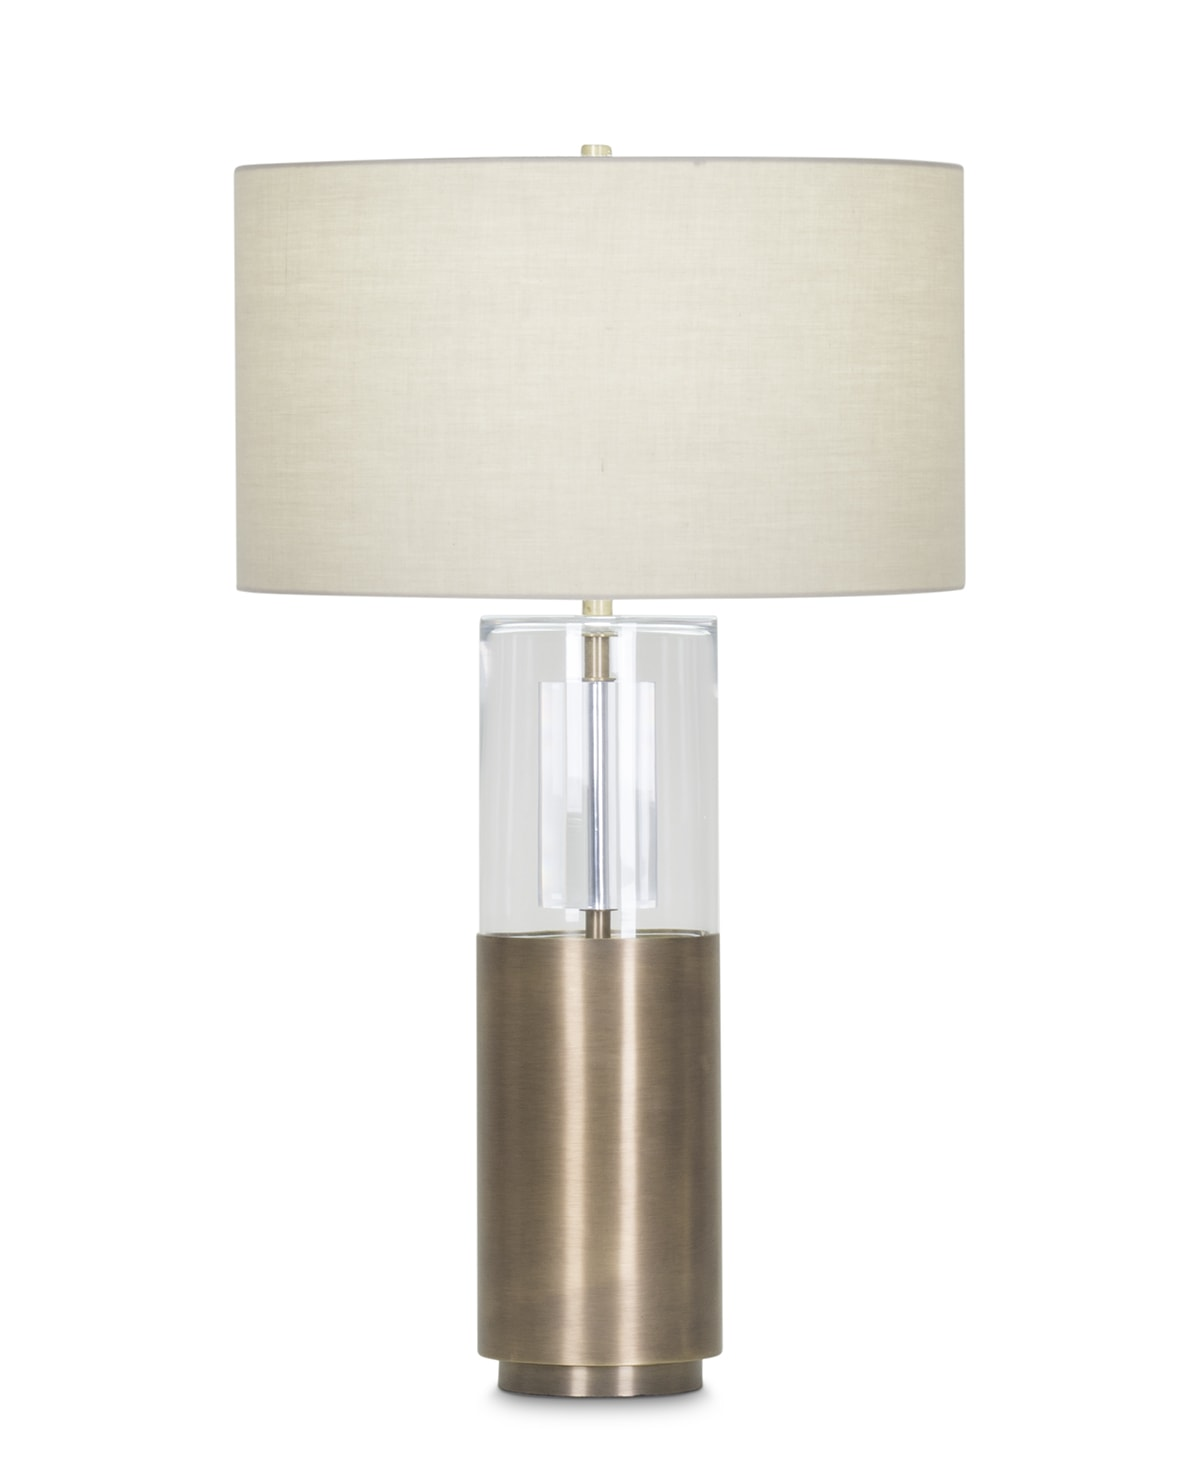 FlowDecor Riley Table Lamp in metal with antique brass finish and glass and beige cotton drum shade (# 3960)